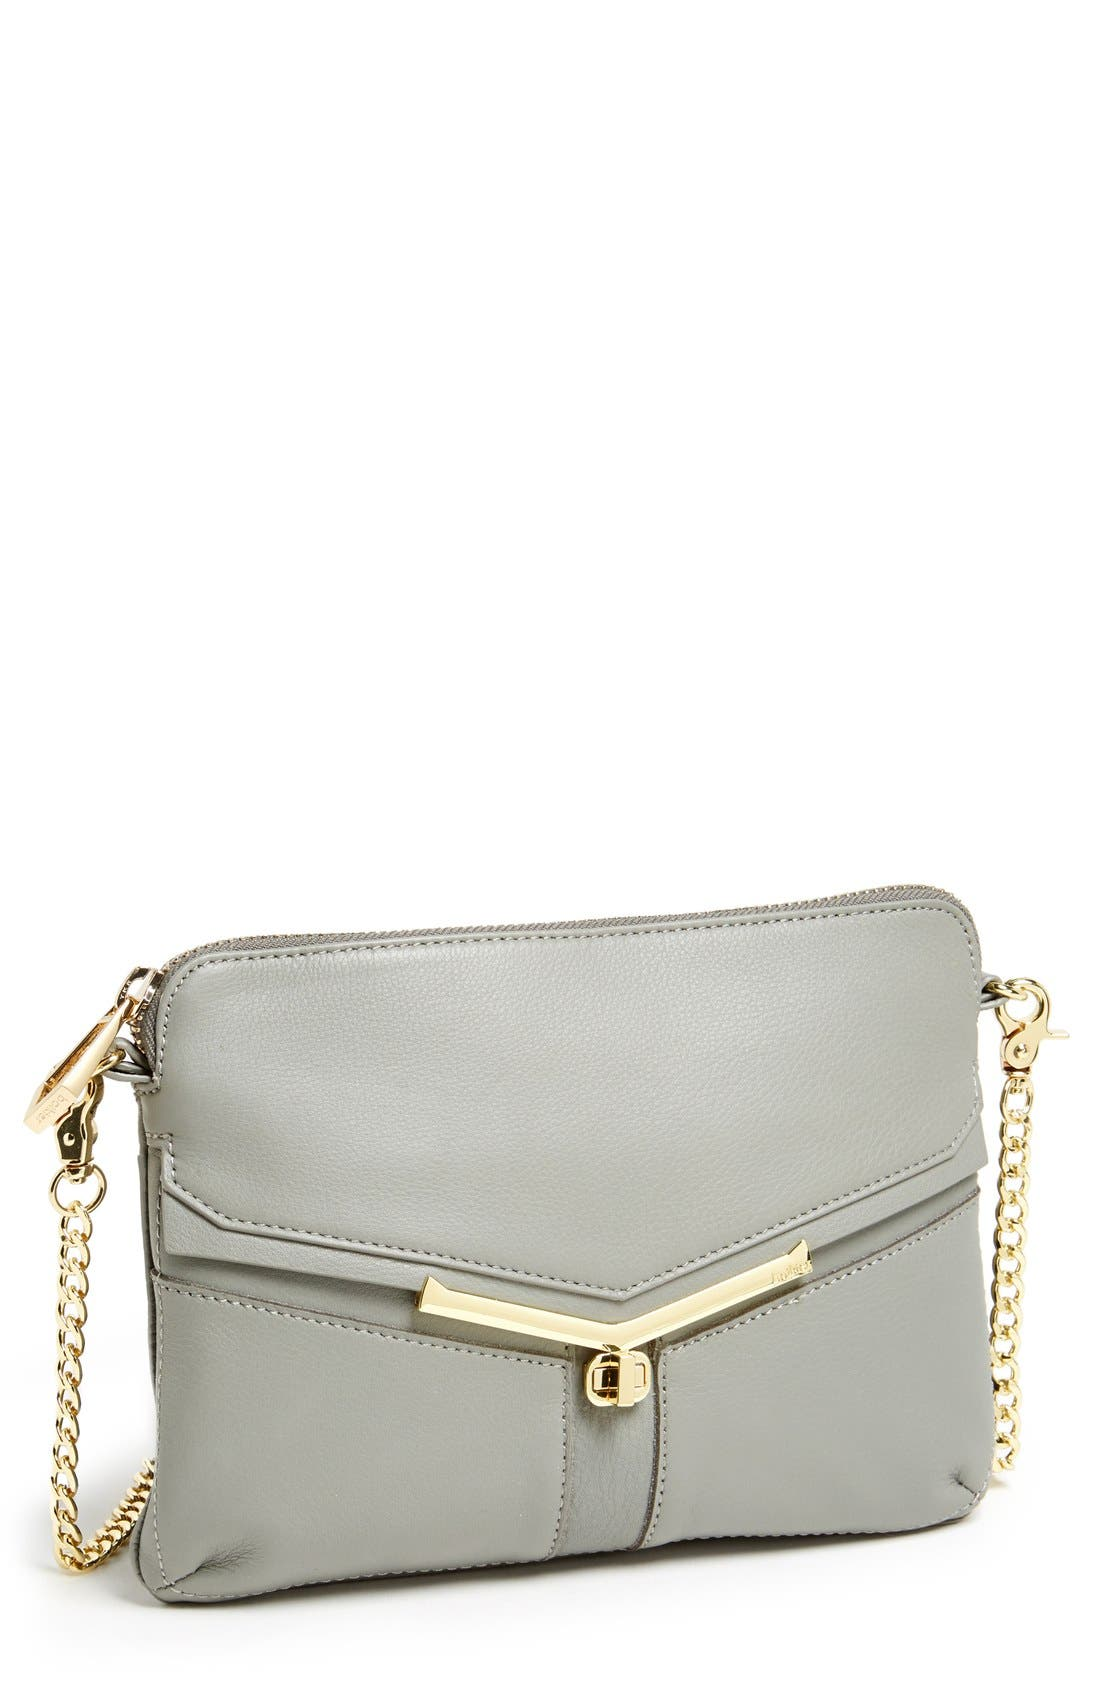 Main Image - Botkier 'Valentina - Mini' Convertible Crossbody Clutch